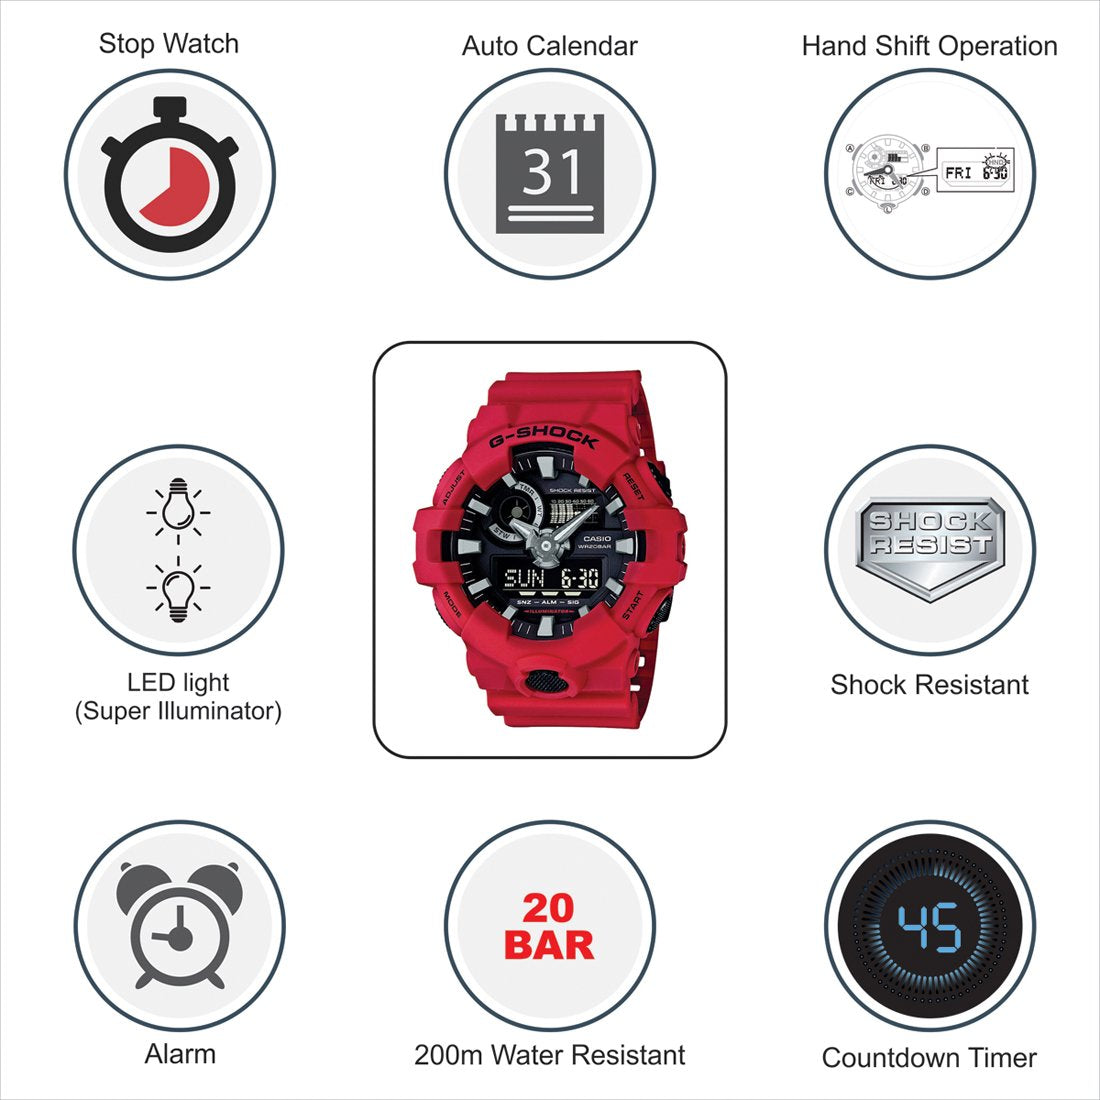 GSHOCK Men's Automatic Wrist Watch analog-digital Display and Resin Strap GA700-4A - yrGear Australia